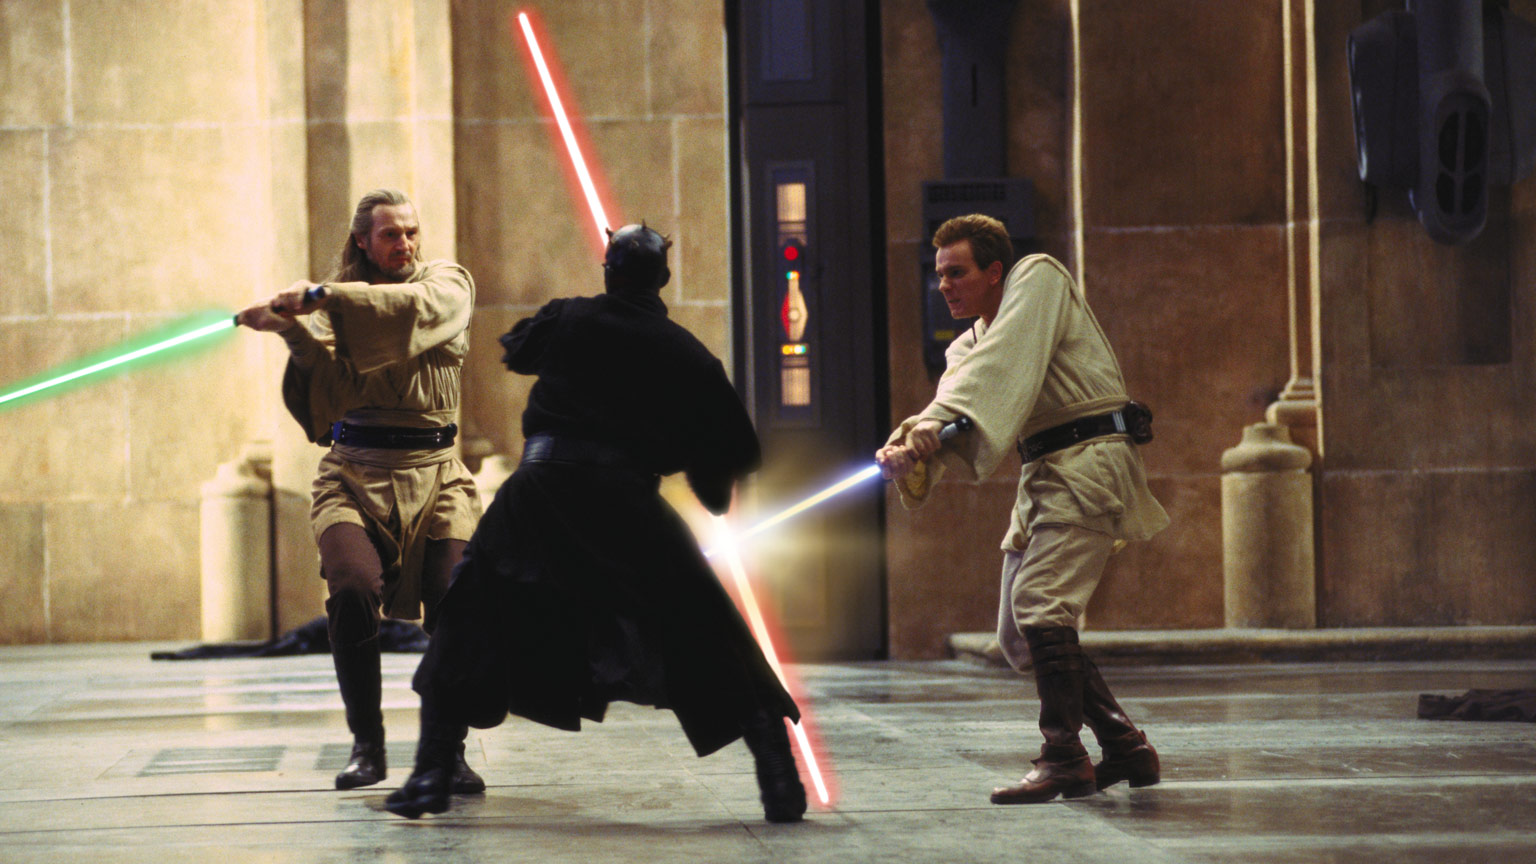 Qui-Gon, Obi-Wan, and Darth Maul duel in The Phantom Menace.